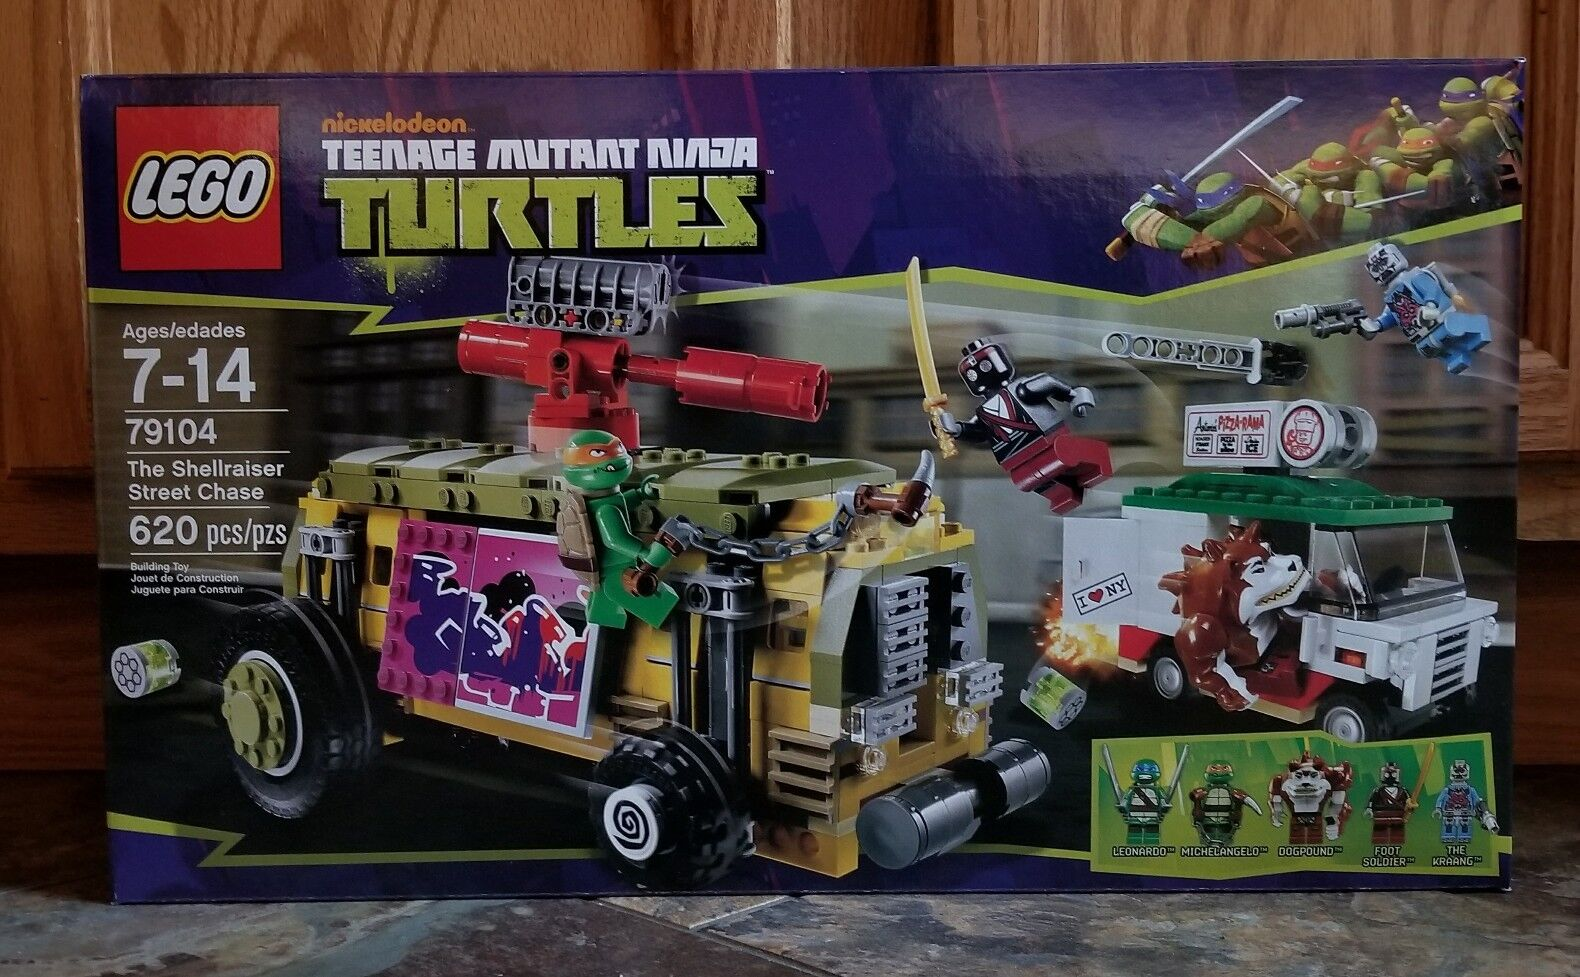 nuovo SEALED LEGO 79104 TMNT Ninja Turtles The Shellraiser Street  Chase Retirosso  edizione limitata a caldo